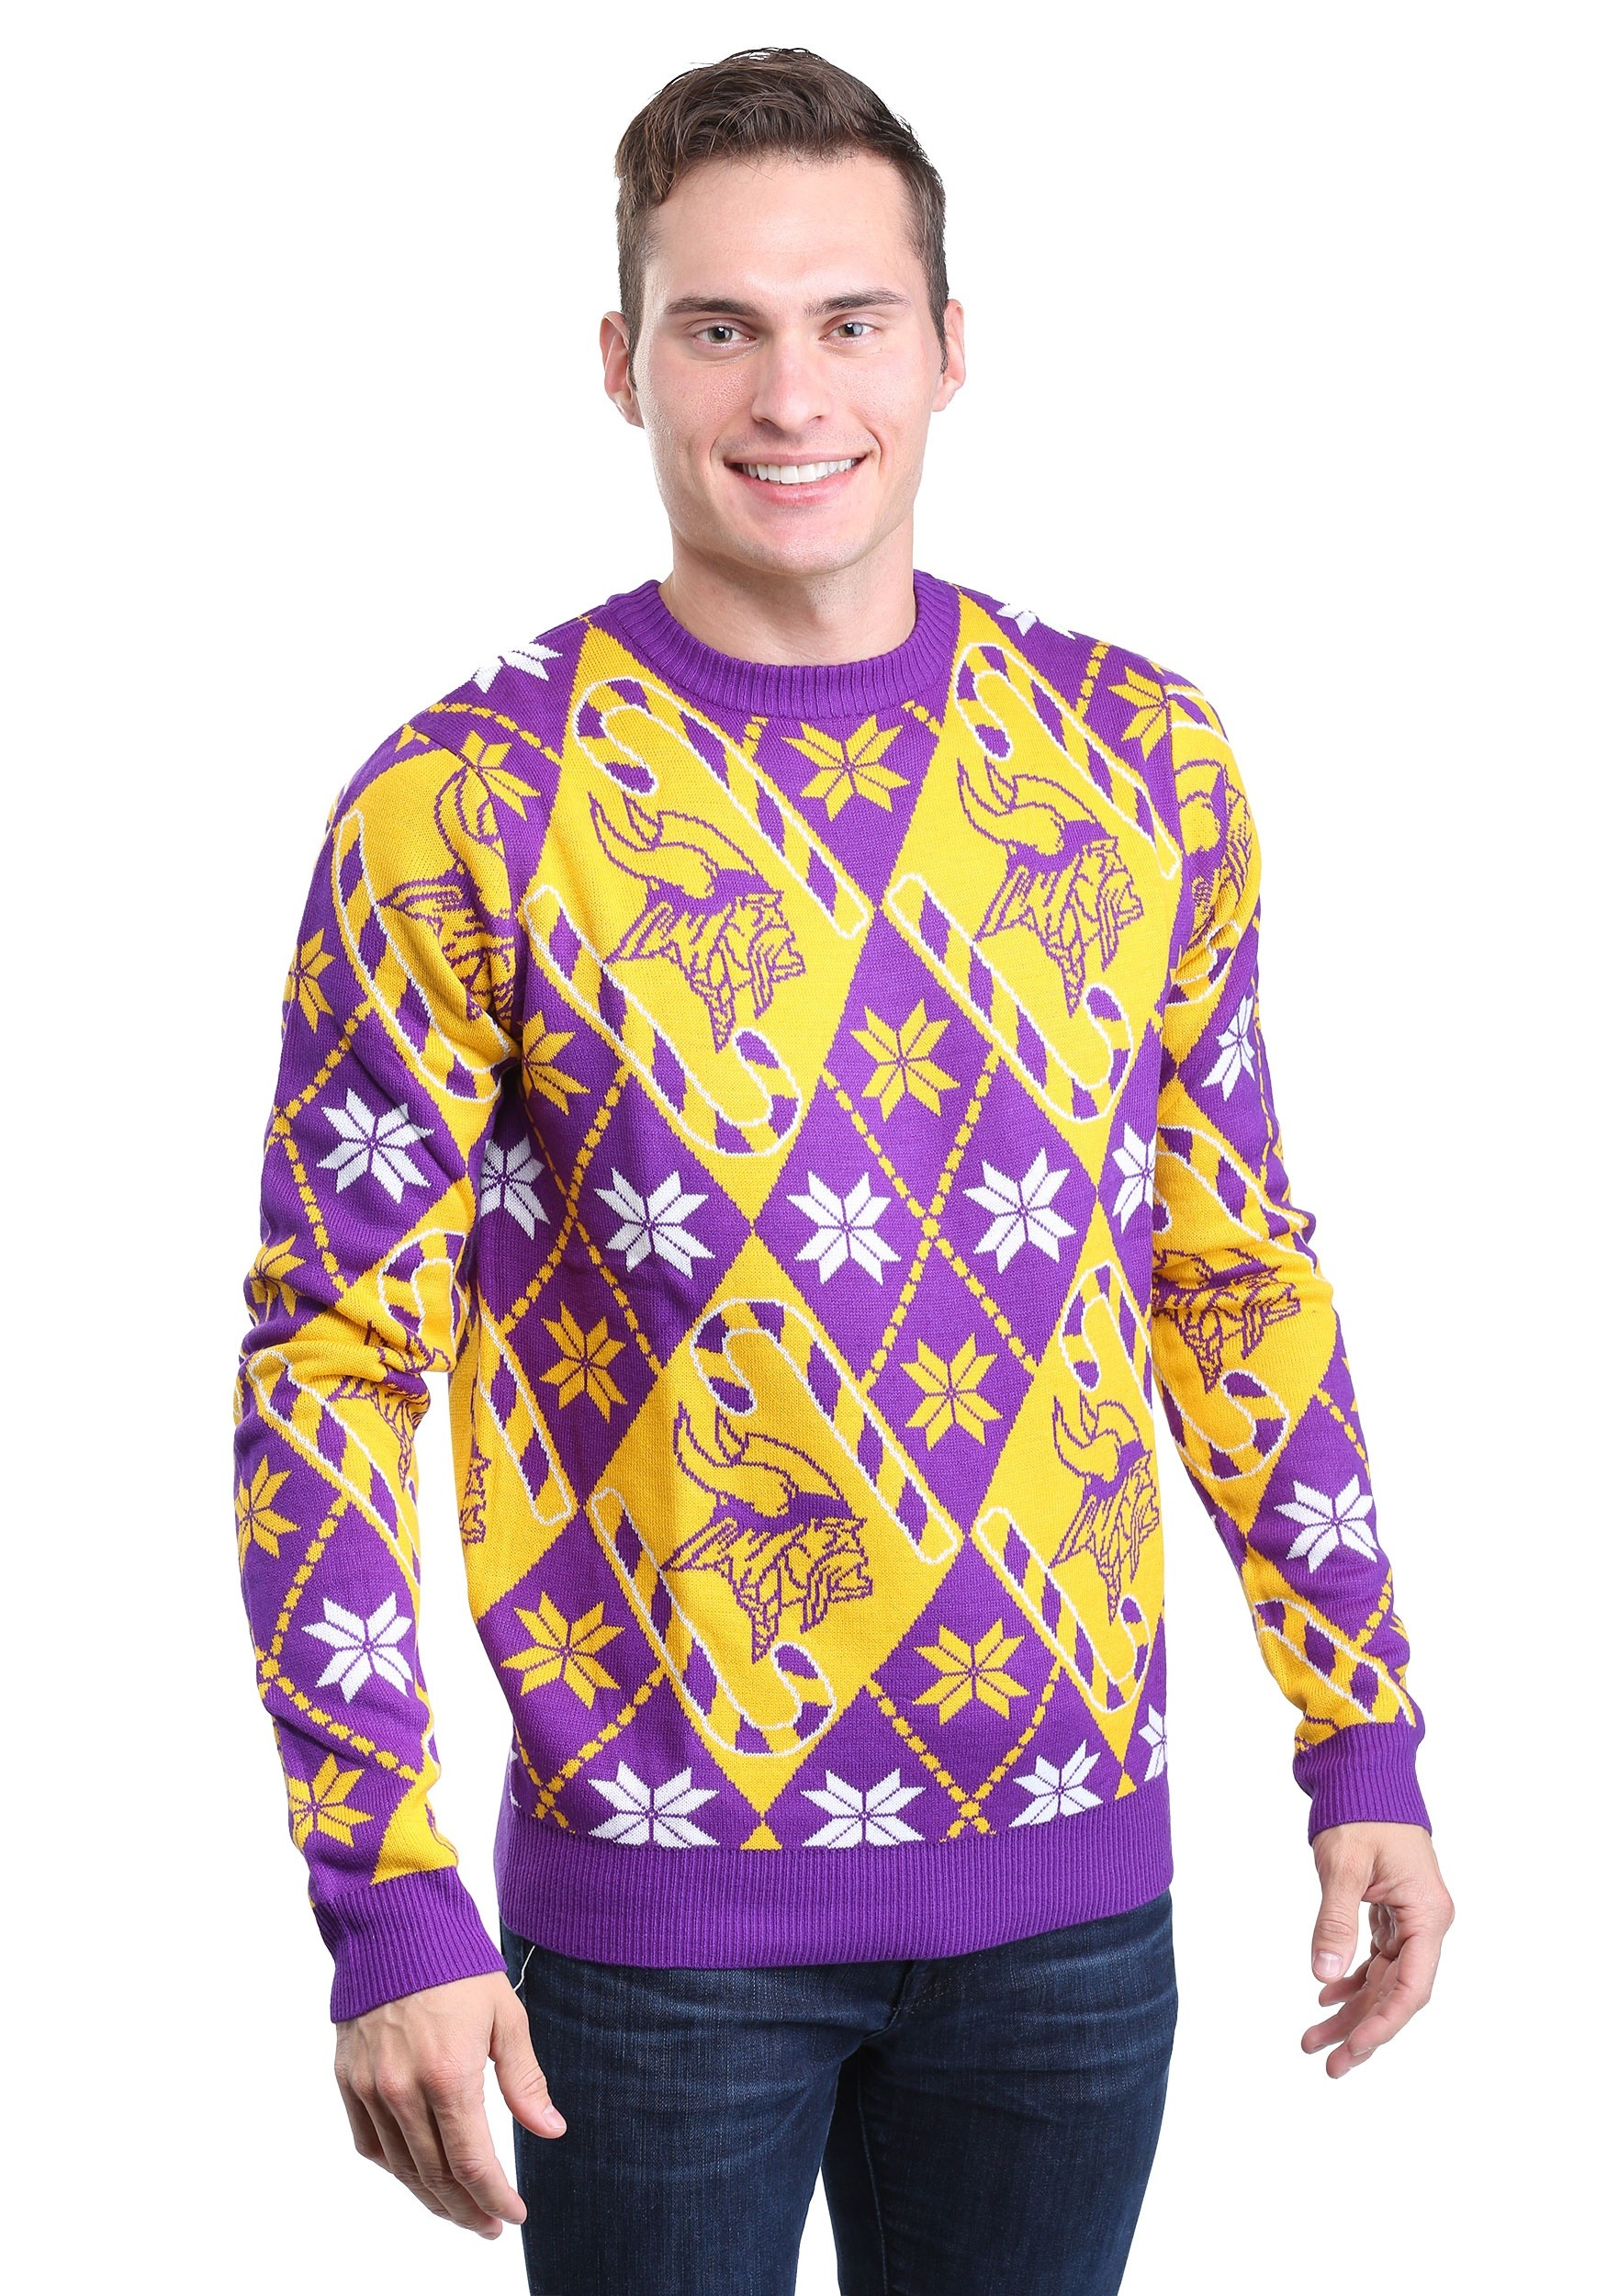 the latest 663d1 73236 Minnesota Vikings Candy Cane Ugly Christmas Sweater